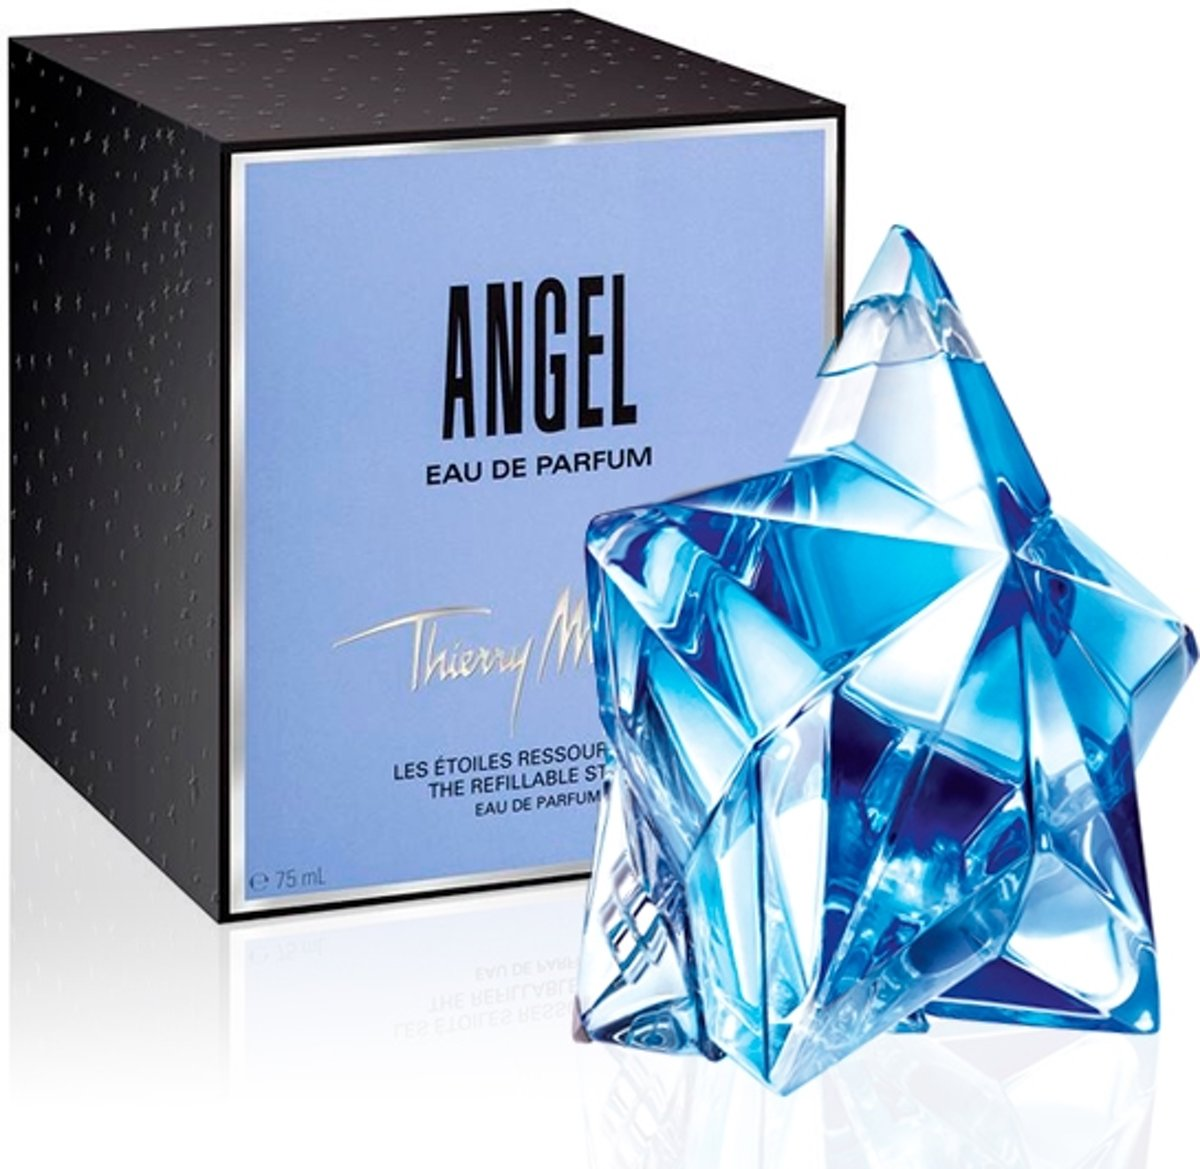 Bolcom Thierry Mugler Angel 75 Ml Eau De Parfum Damesparfum